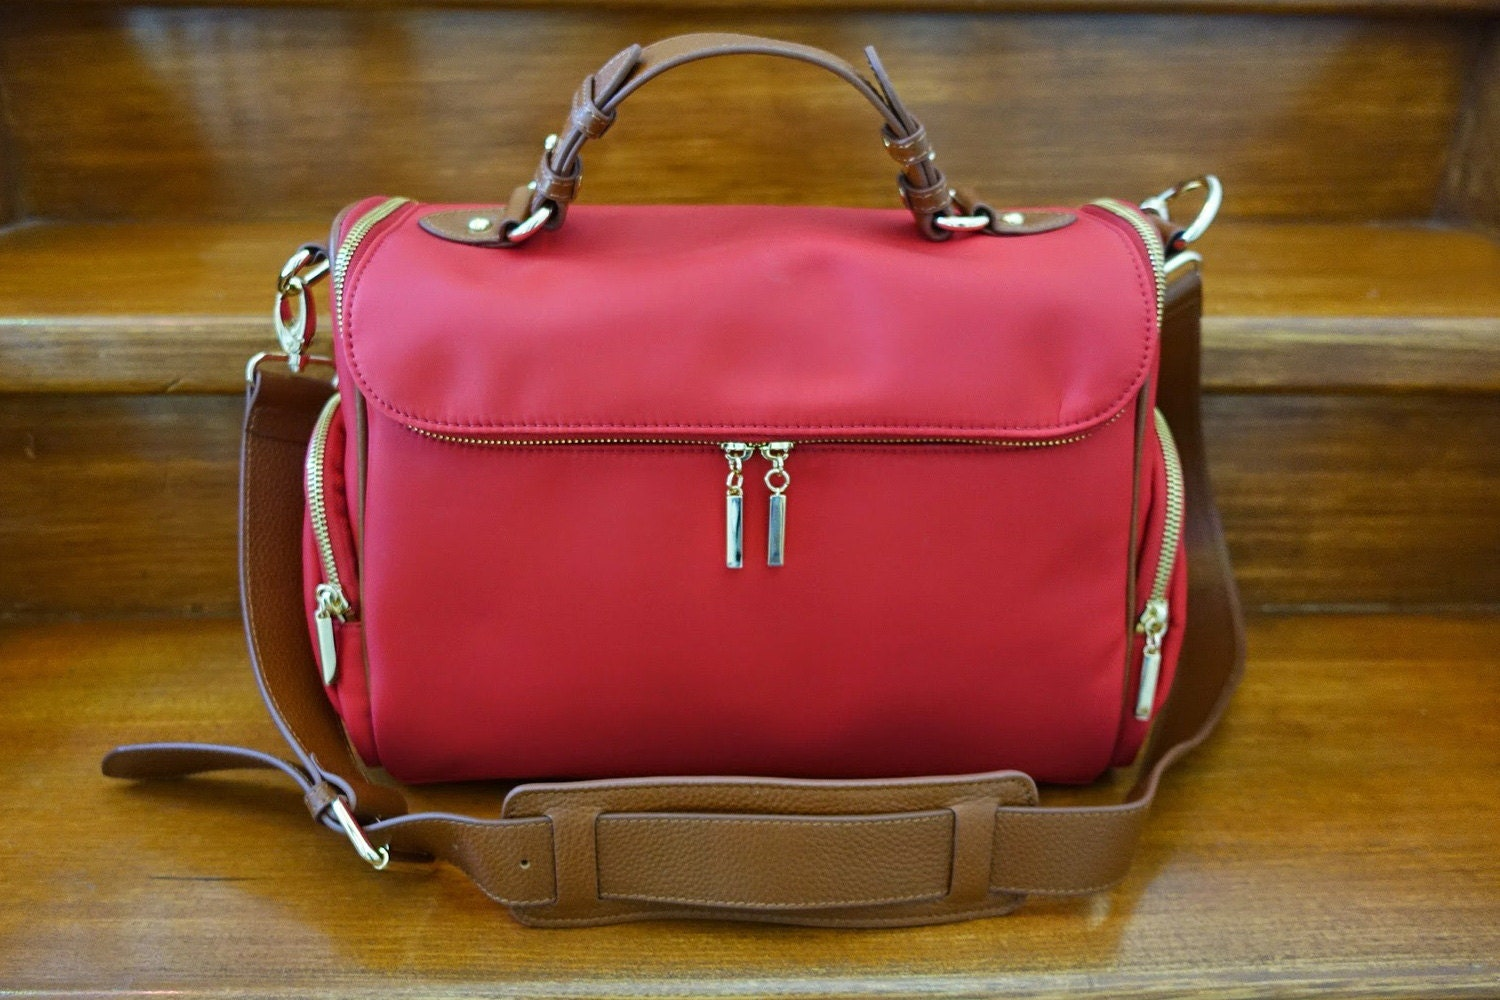 Stylish Camera Bag for Women Designed for SLR Cameras RED